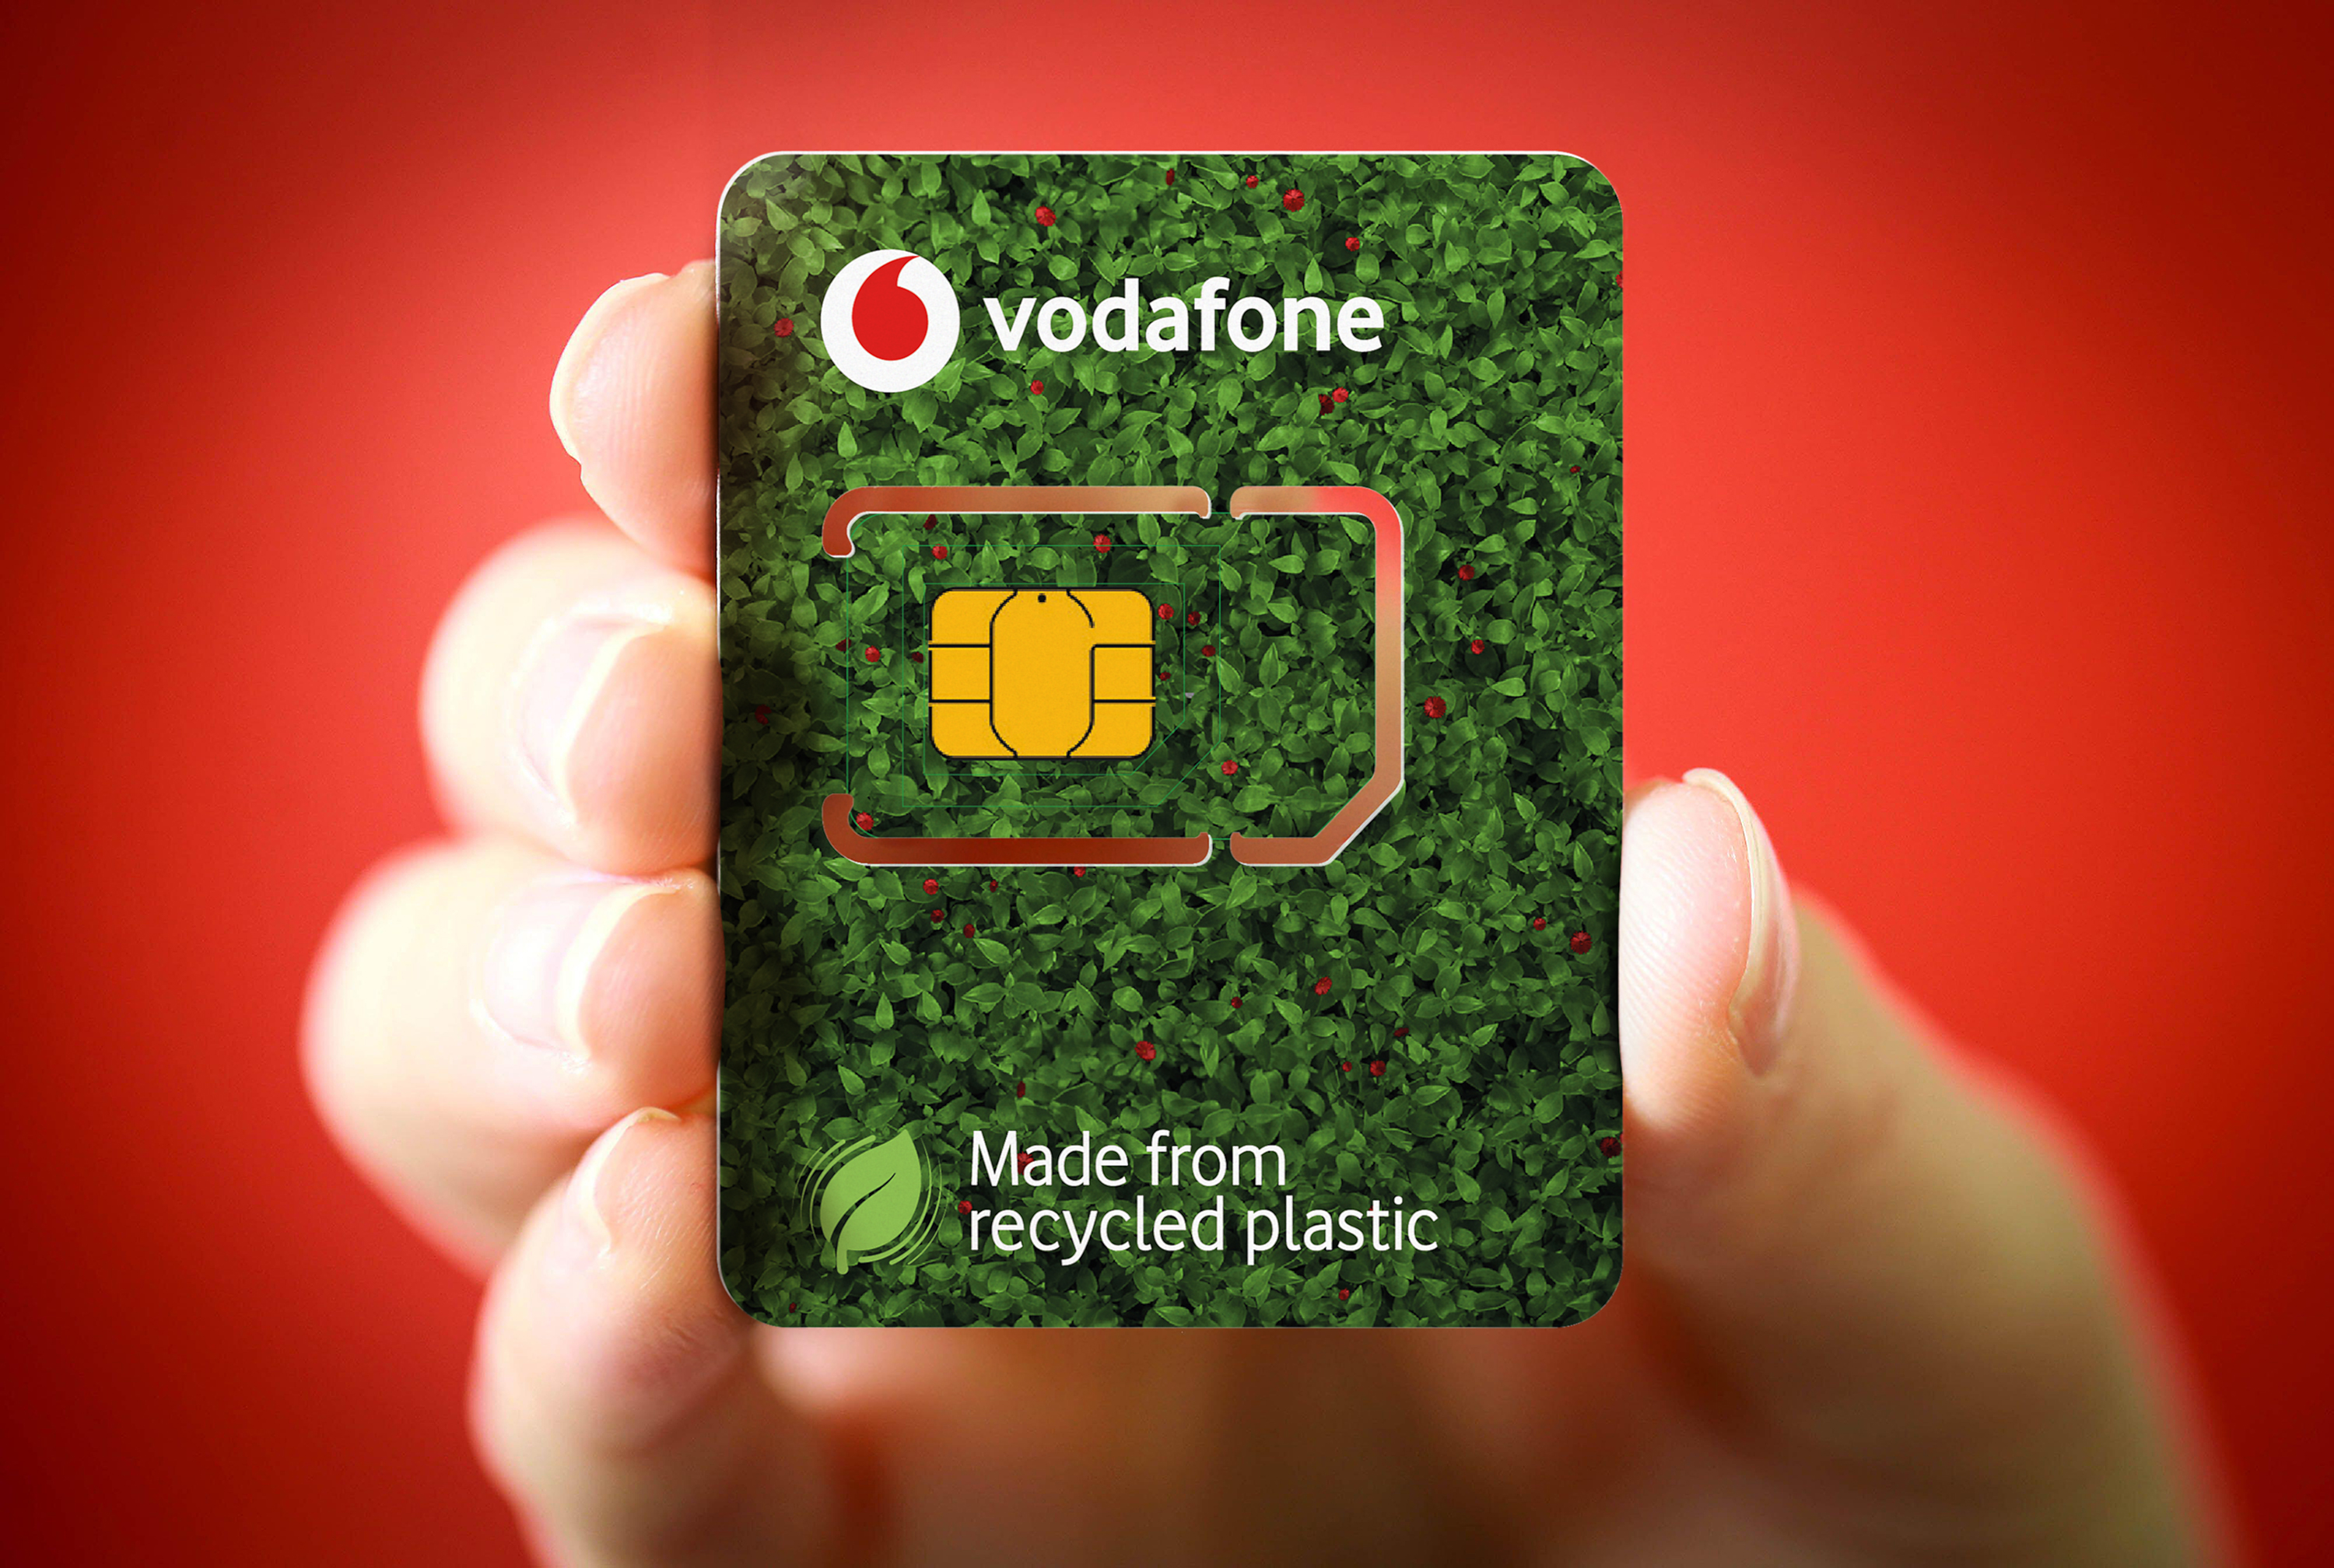 Vodafone launches ECO-SIM cards made from recycled plastic